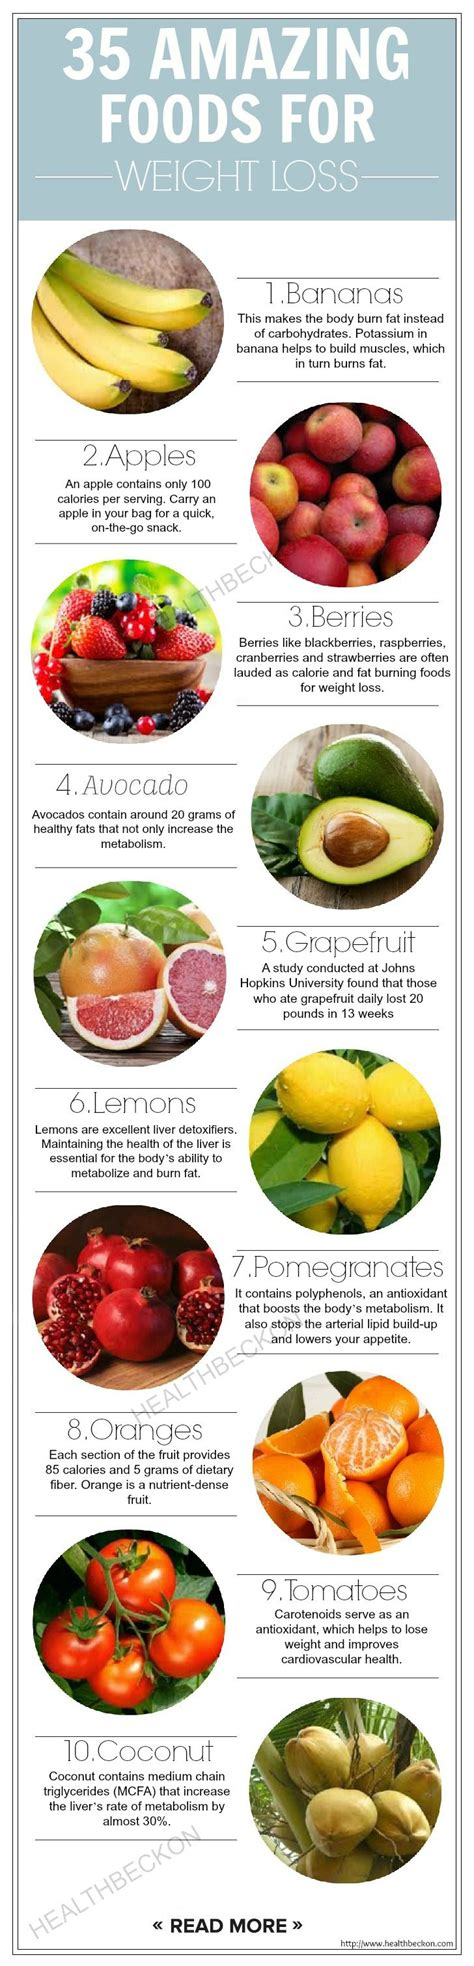 5 weight loss foods 30 amazing foods for weight loss for healthy weight loss